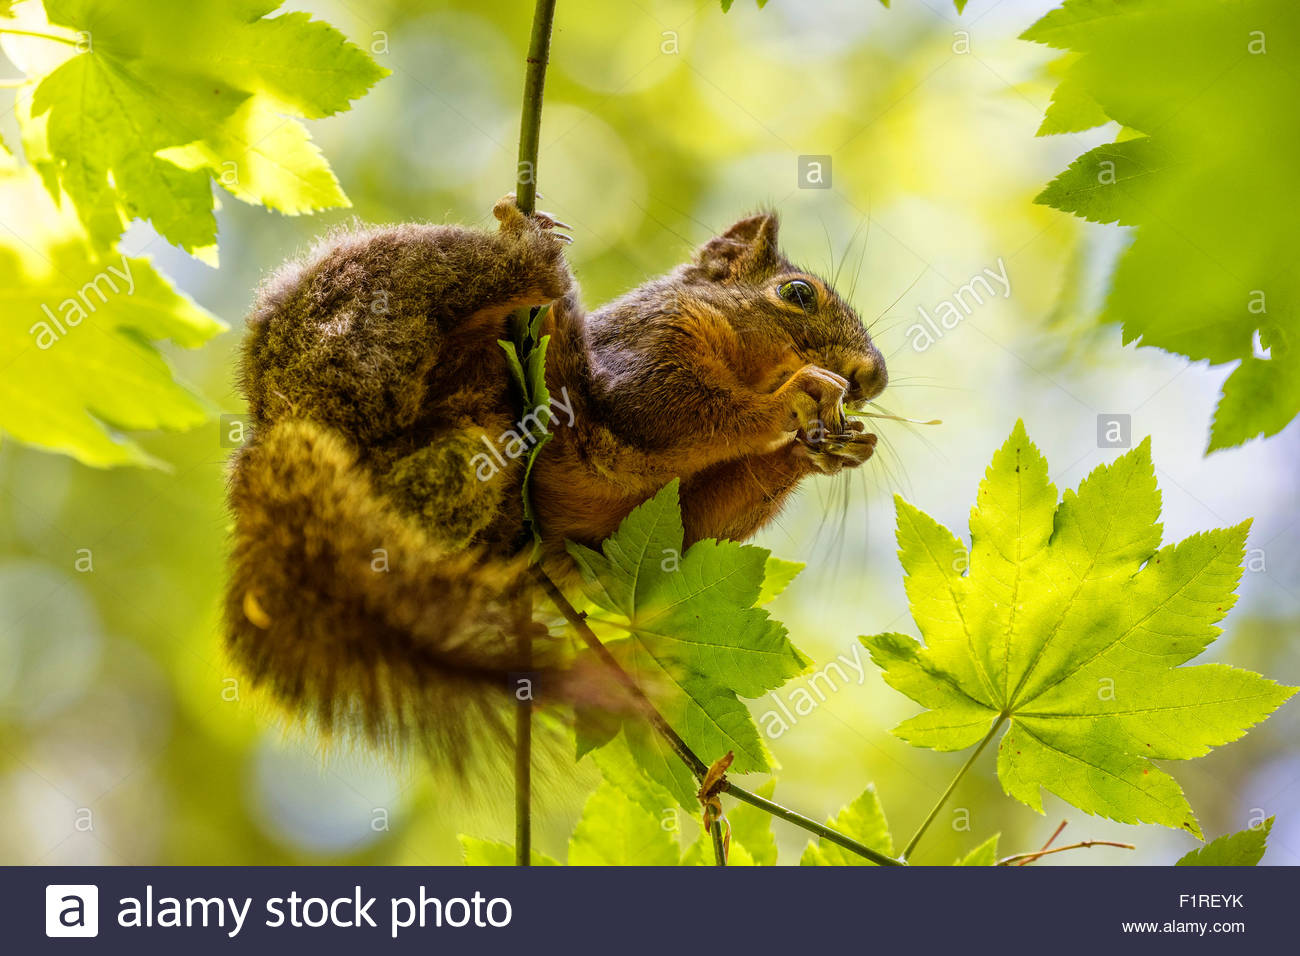 A Cascade golden-mantled ground squirrel (Spermophilus saturatus) feeds on seeds from a low branch of a maple tree. - Stock Image